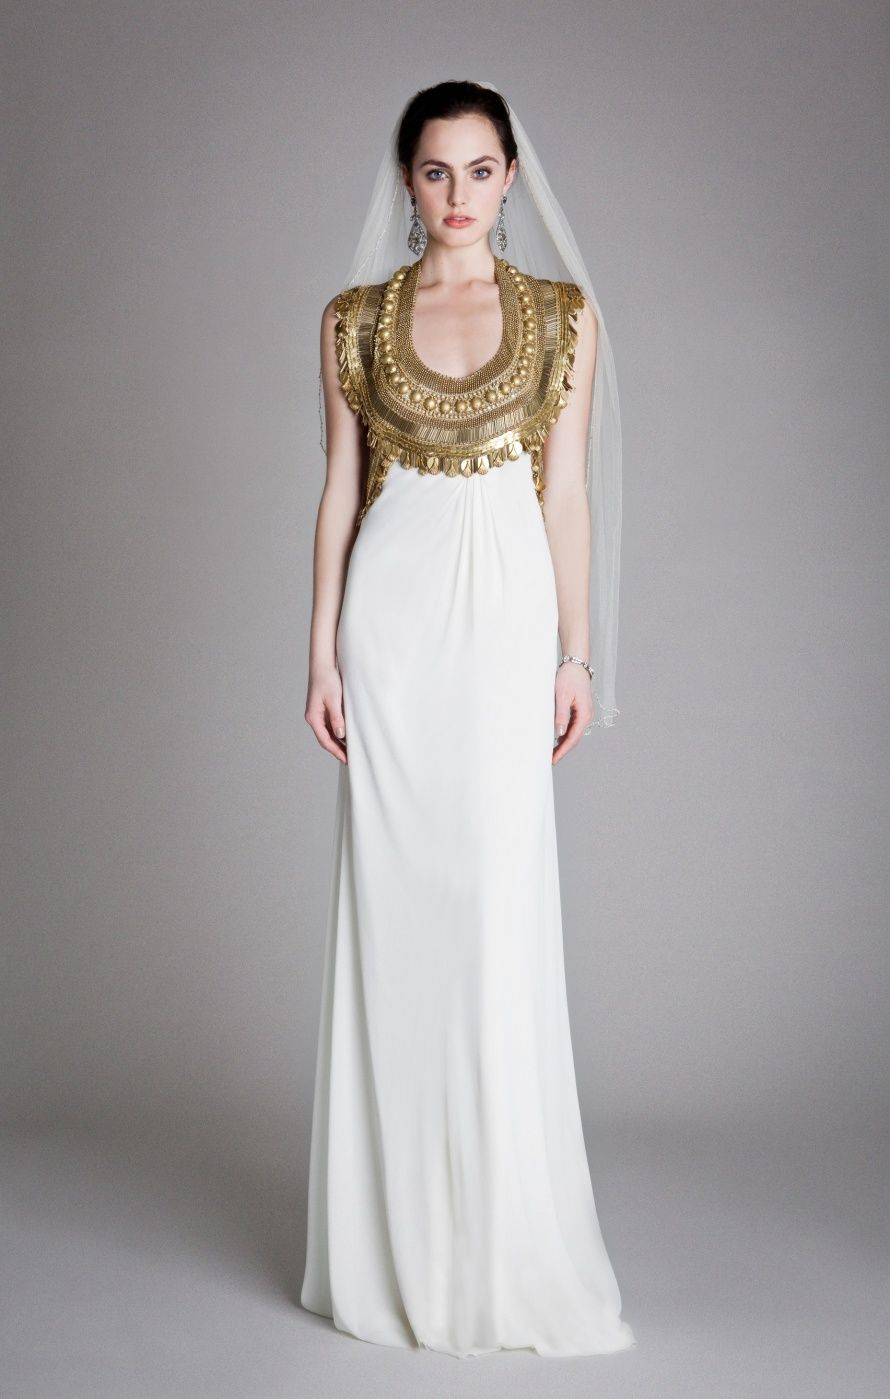 Egyptian wedding dresses  Y RTW Look Goddess Dress  Temperley London  Artisanal Empress